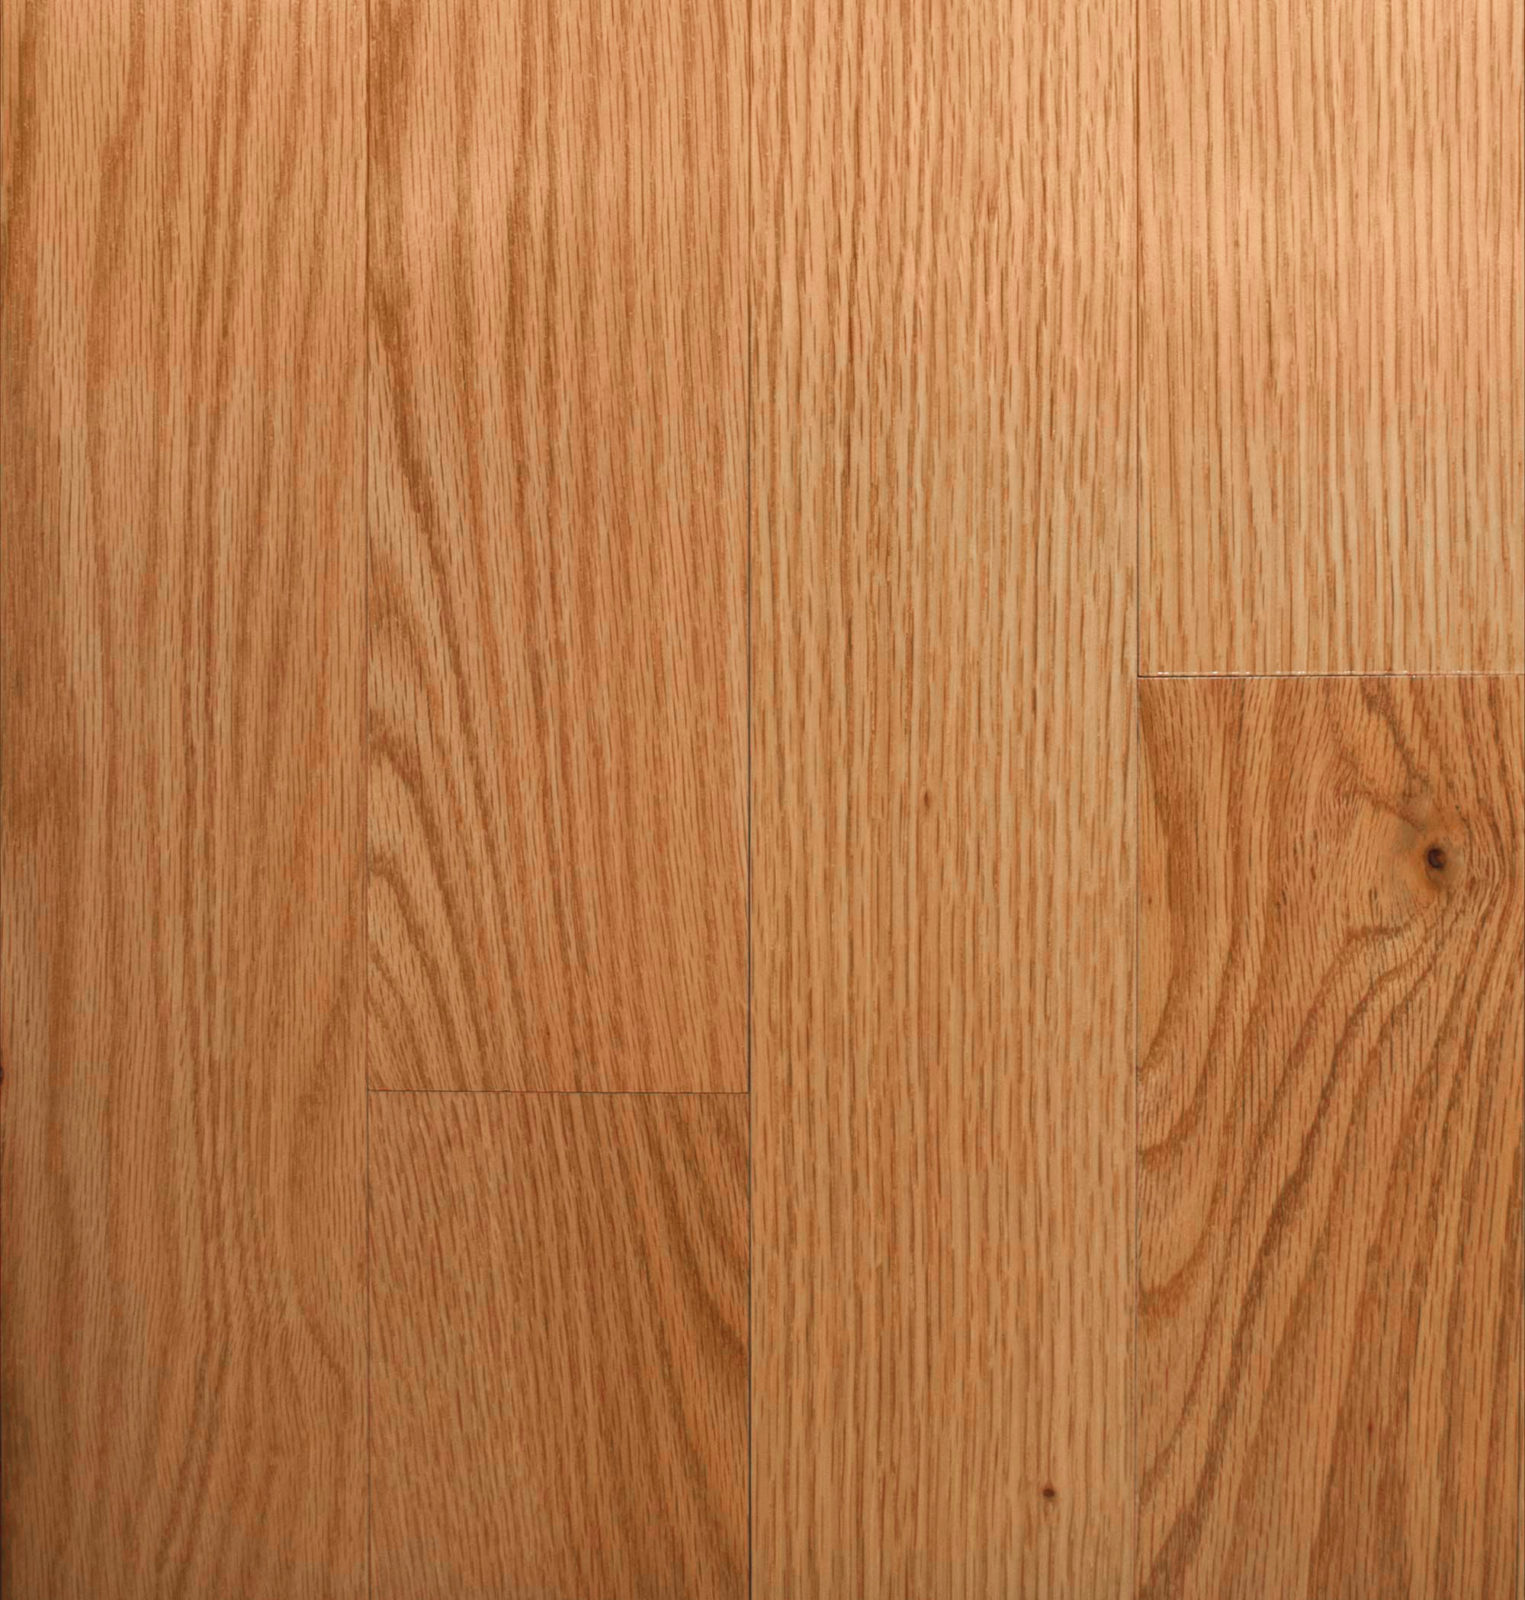 Hardwood Flooring Sale Of Red Oak Hardwood Flooring For Sale Great Unfinished Red